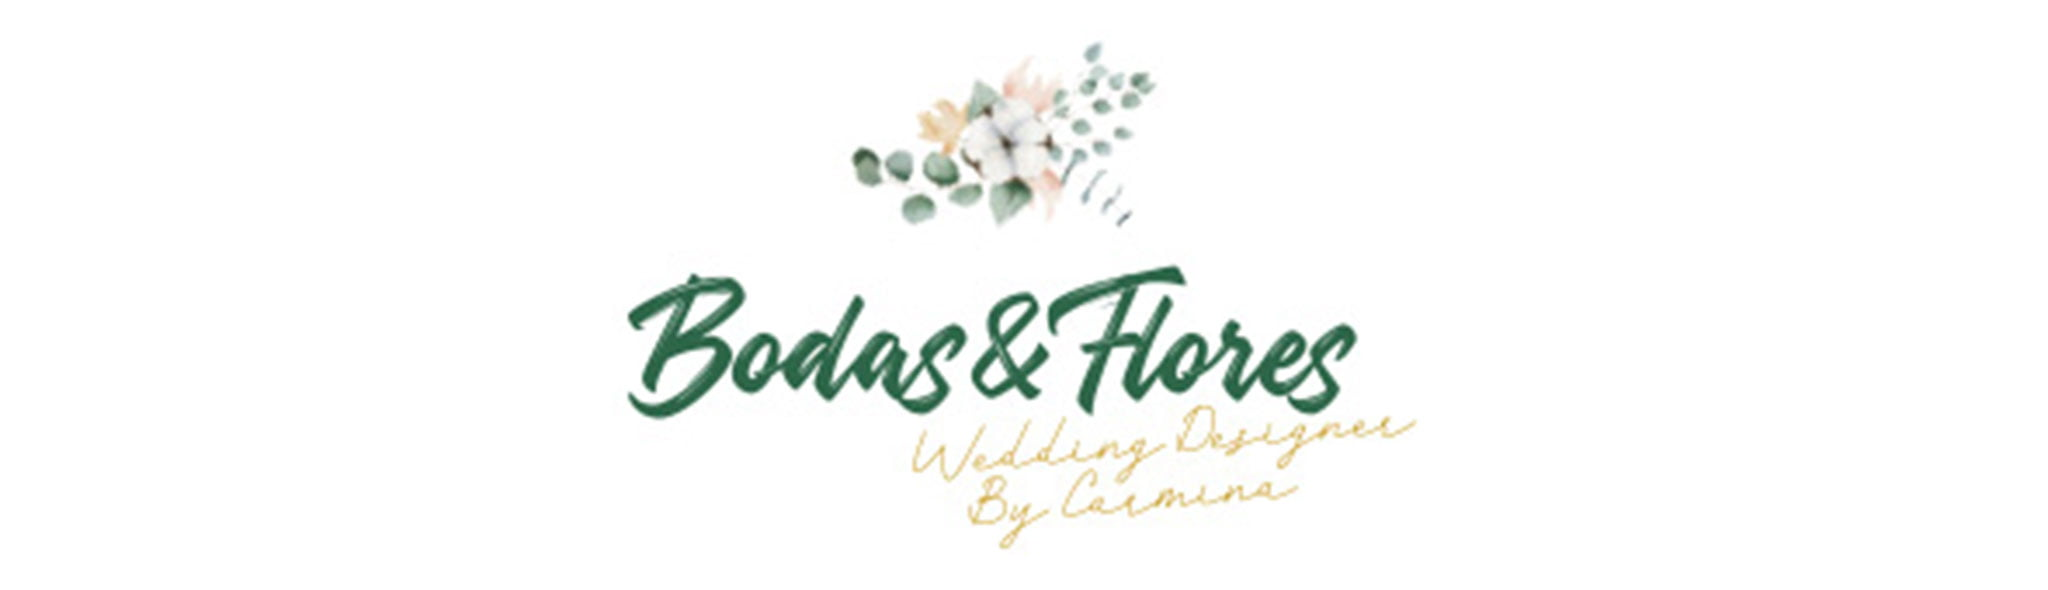 Wedding and Flowers Logo